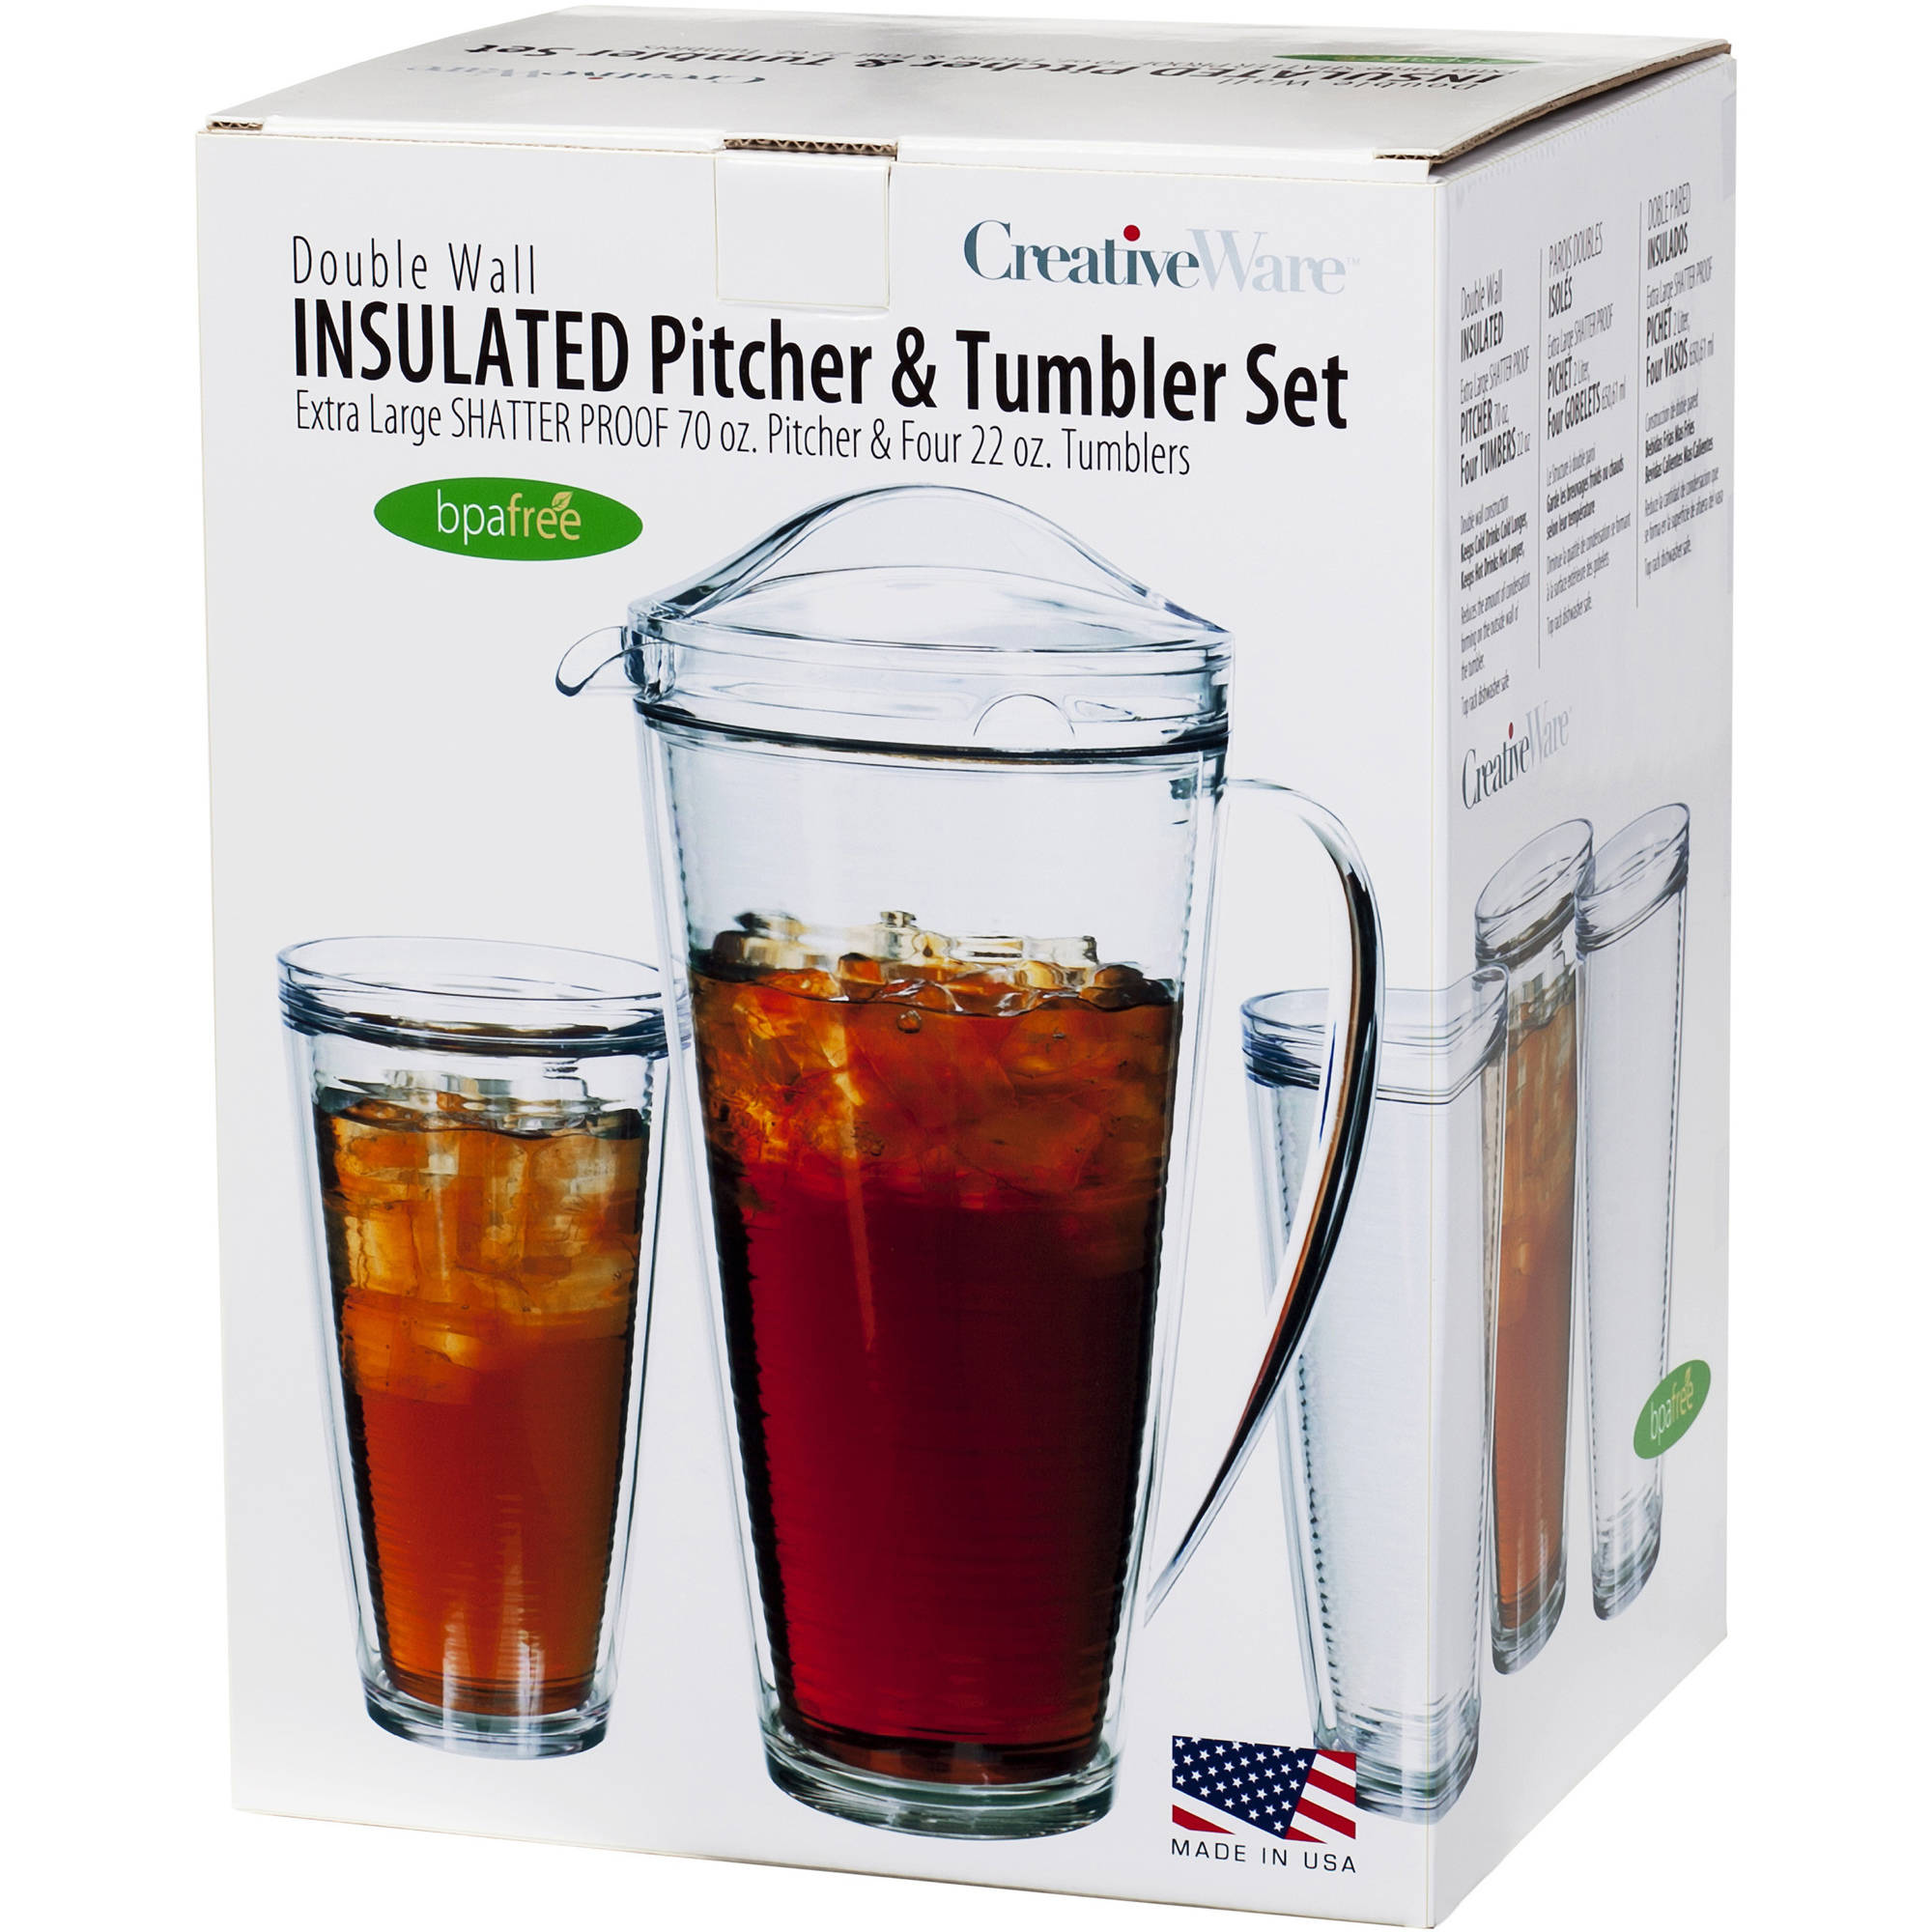 Generic Creative Ware Insulated Pitcher and Tumbler Set, 70 oz Pictcher and 4 22 oz Tumblers